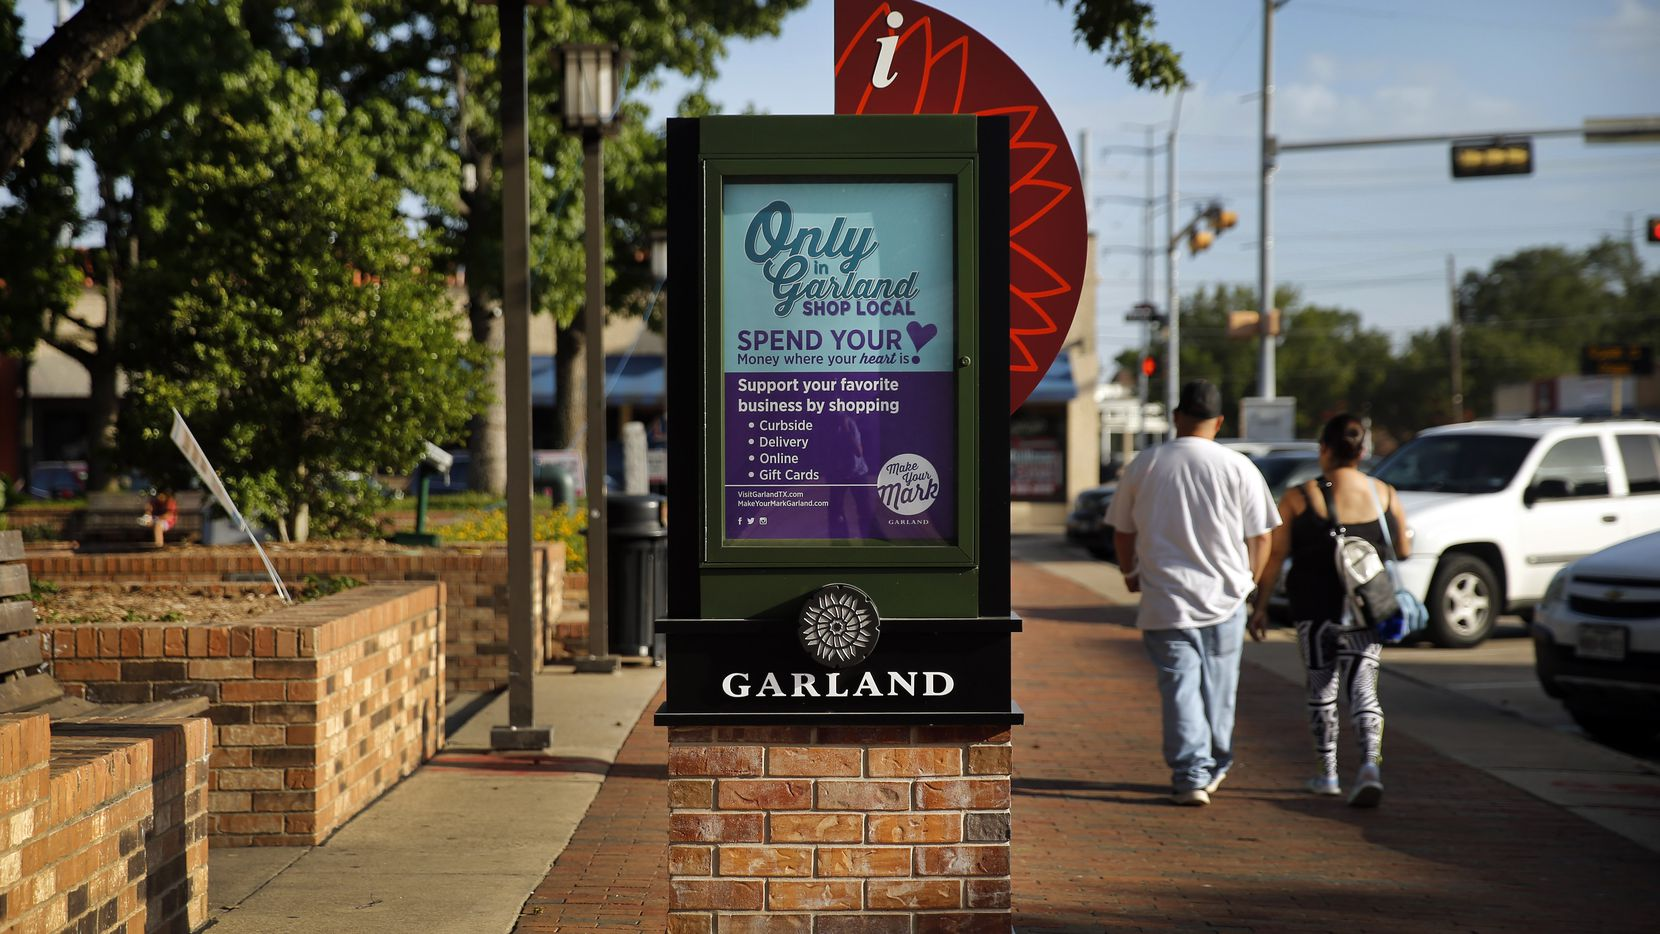 An information kiosk is pictured at Garland City Square in downtown Garland, Texas, Friday, June 26, 2020.